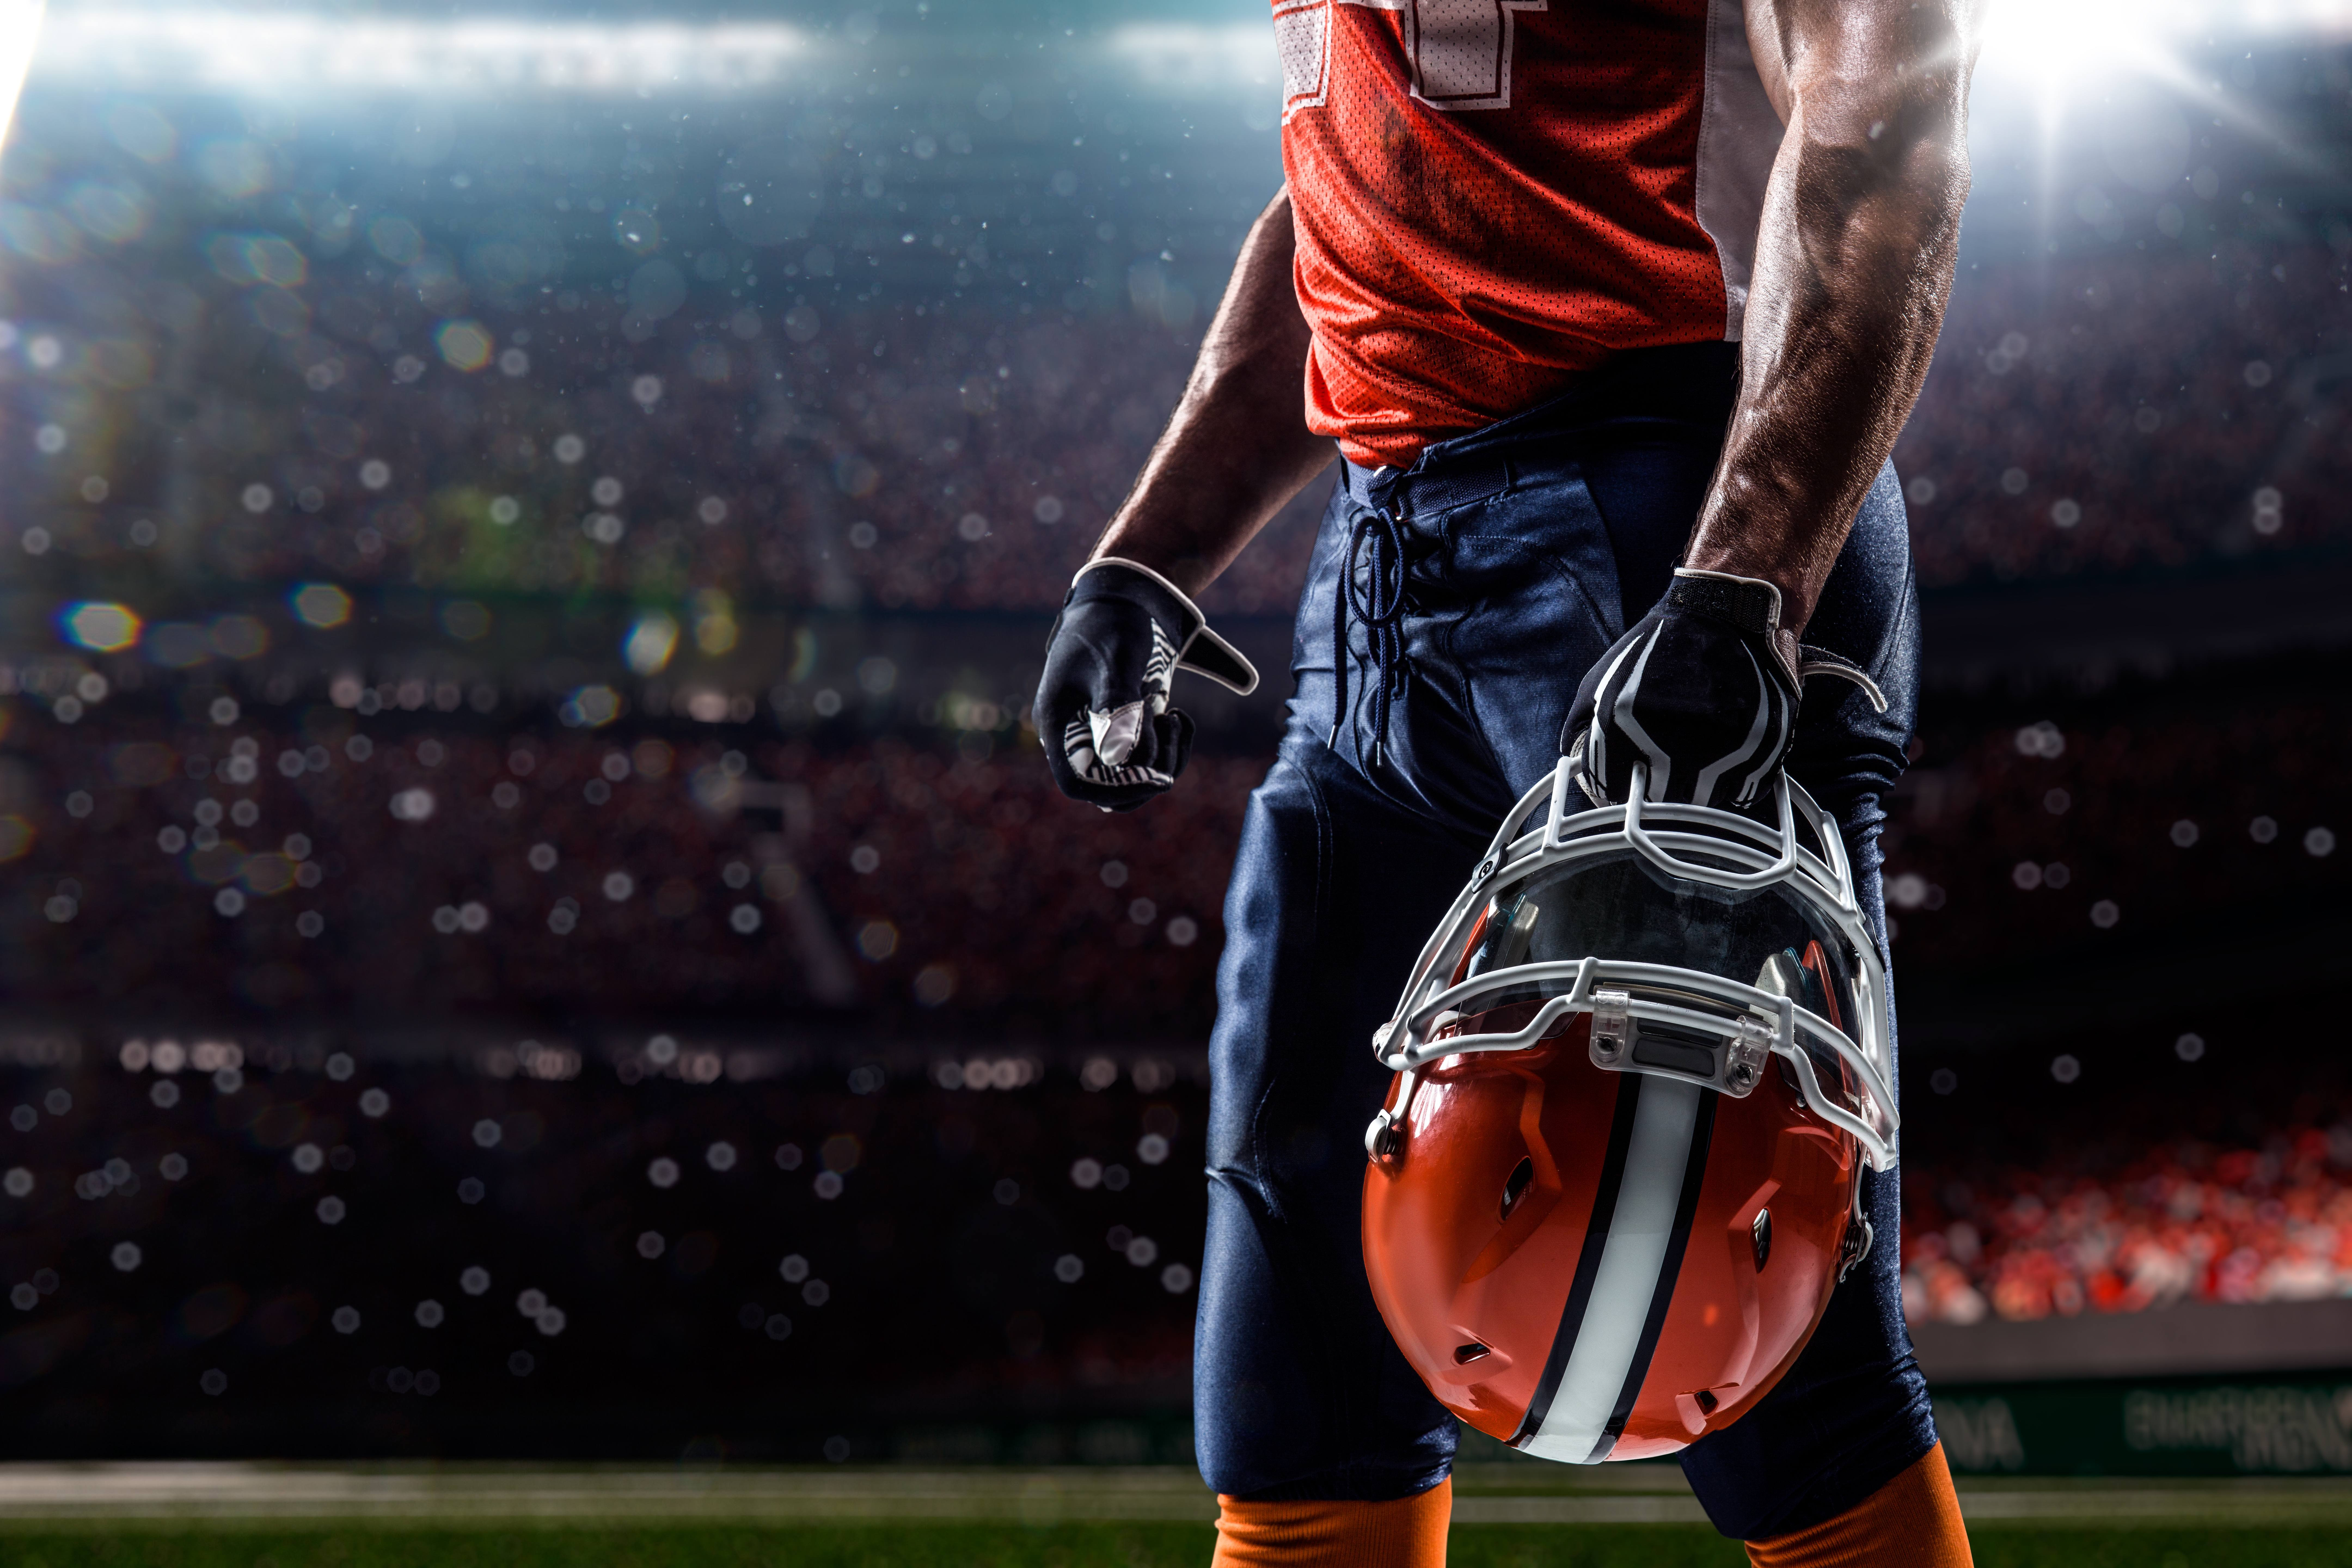 Top 10 Richest NFL Players Ever